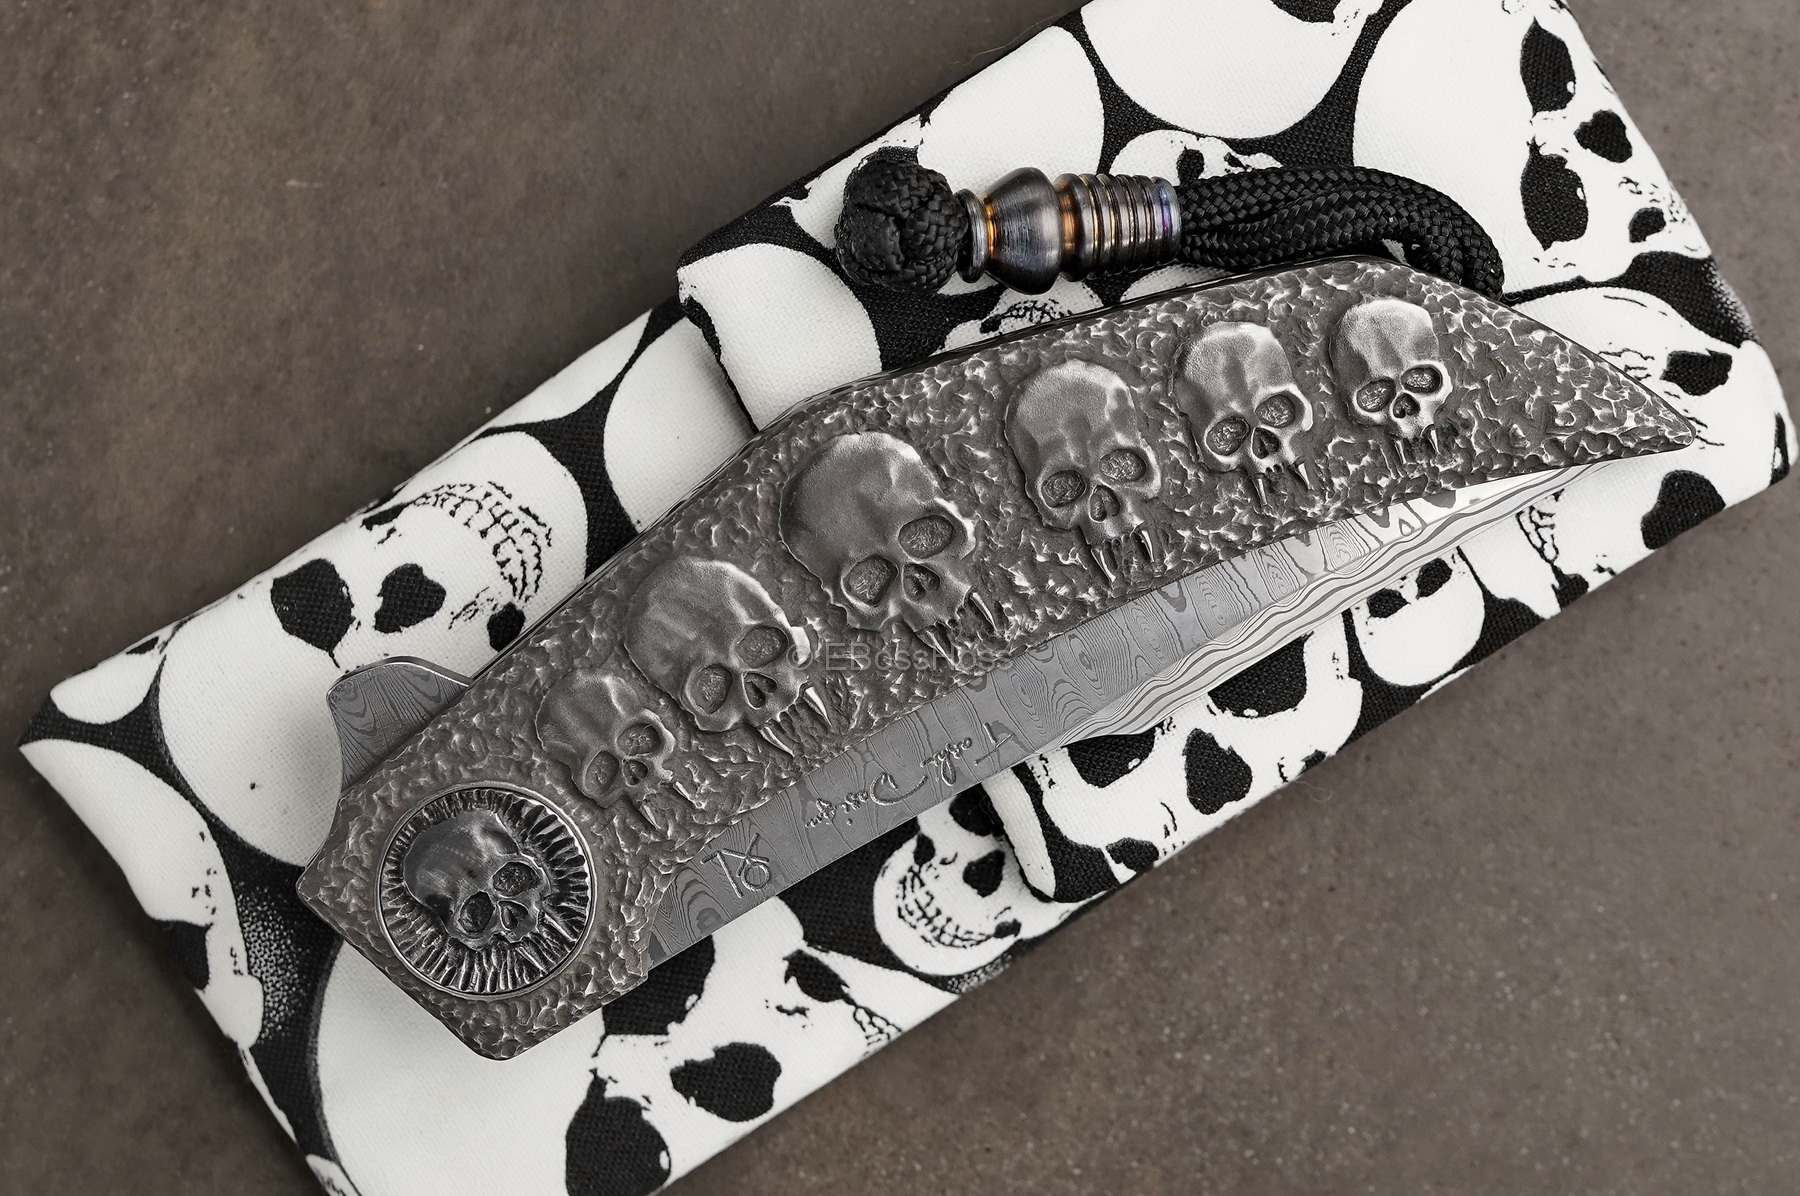 Gudy van Poppel Custom Deluxe Engraved Xerxes Flipper Collaboration